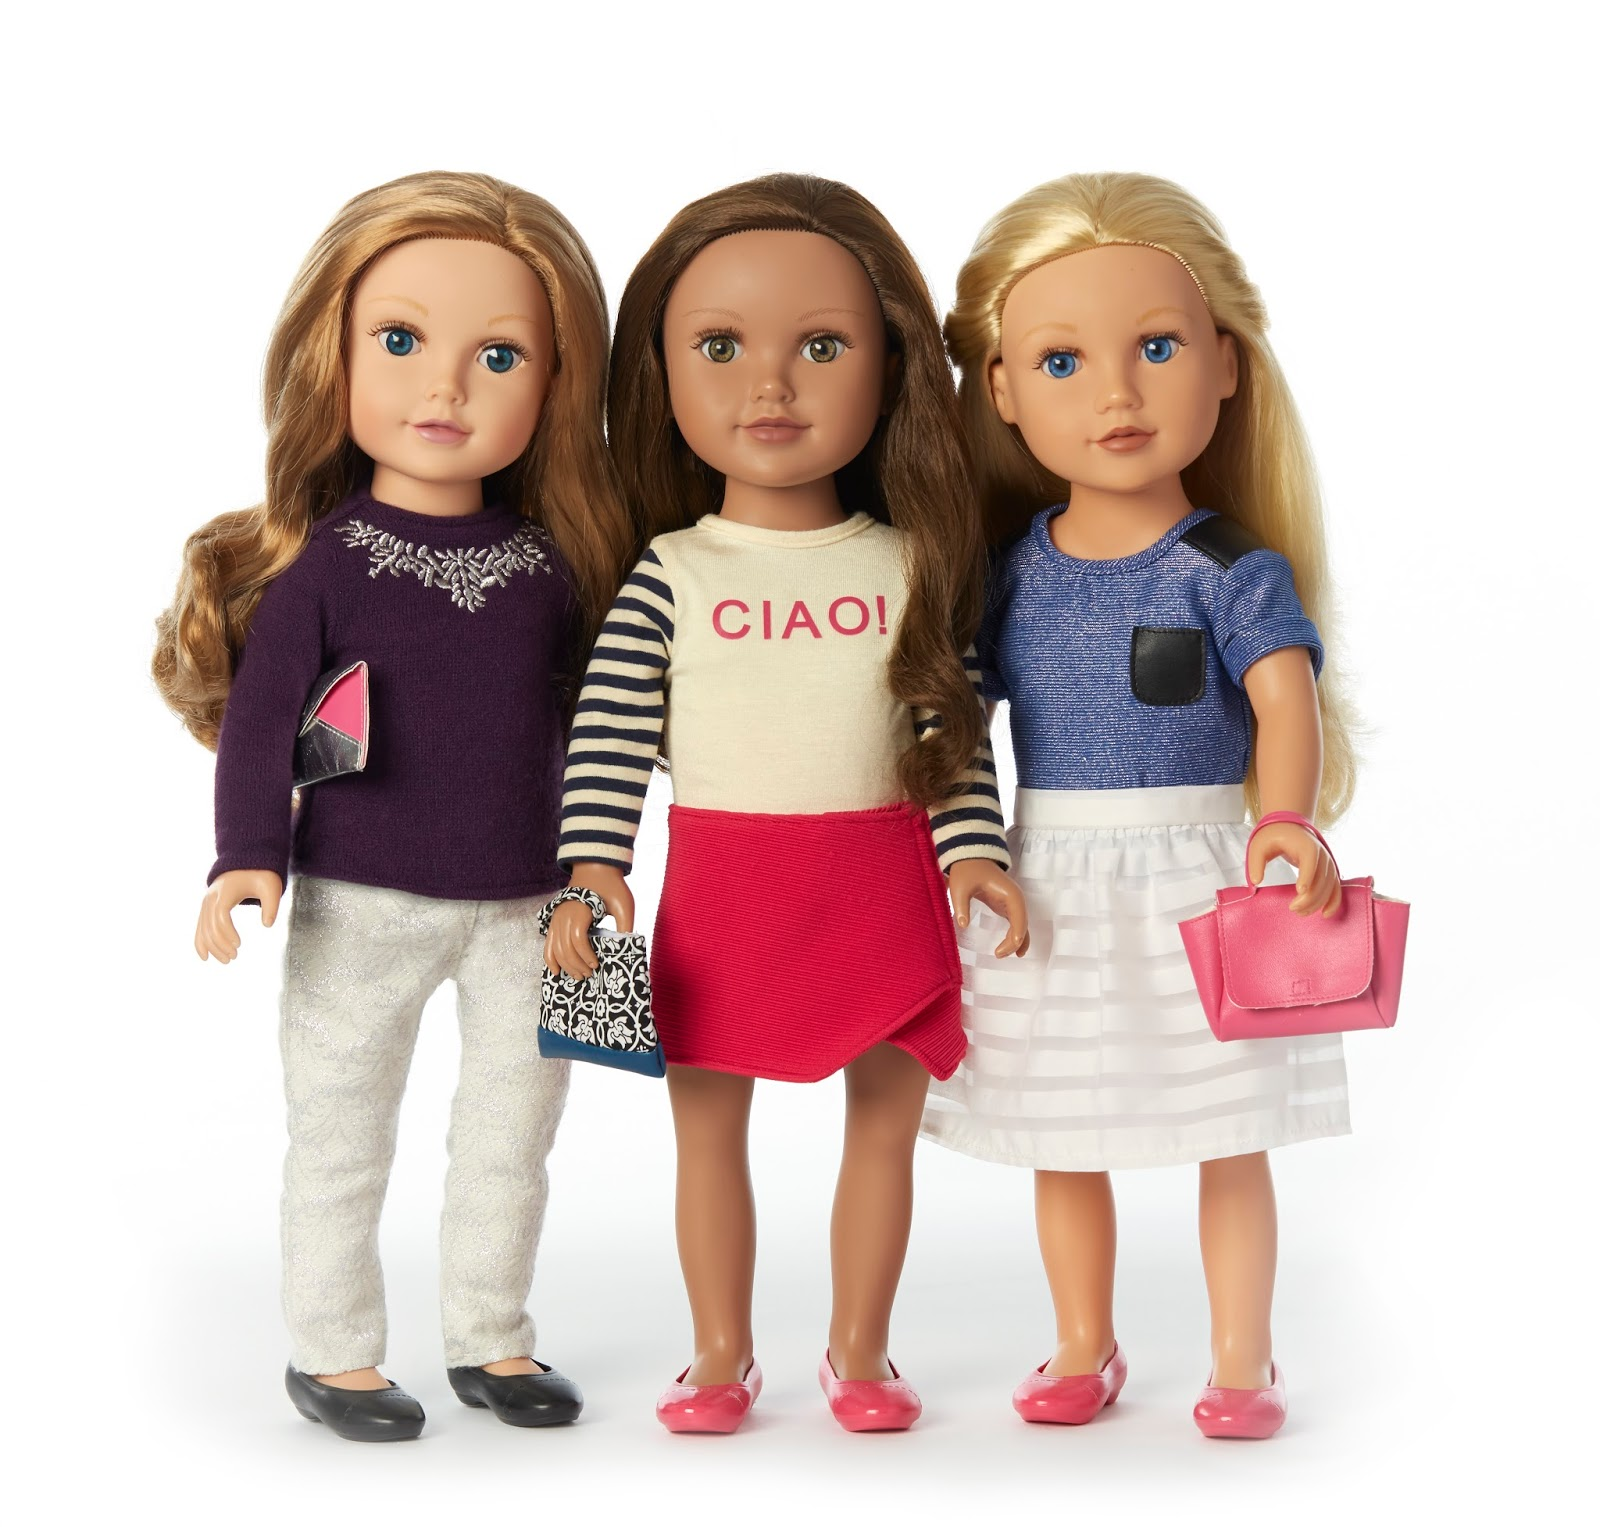 Toys R Us Journey Girls : Welcome to tmg journey girls from toys r us are